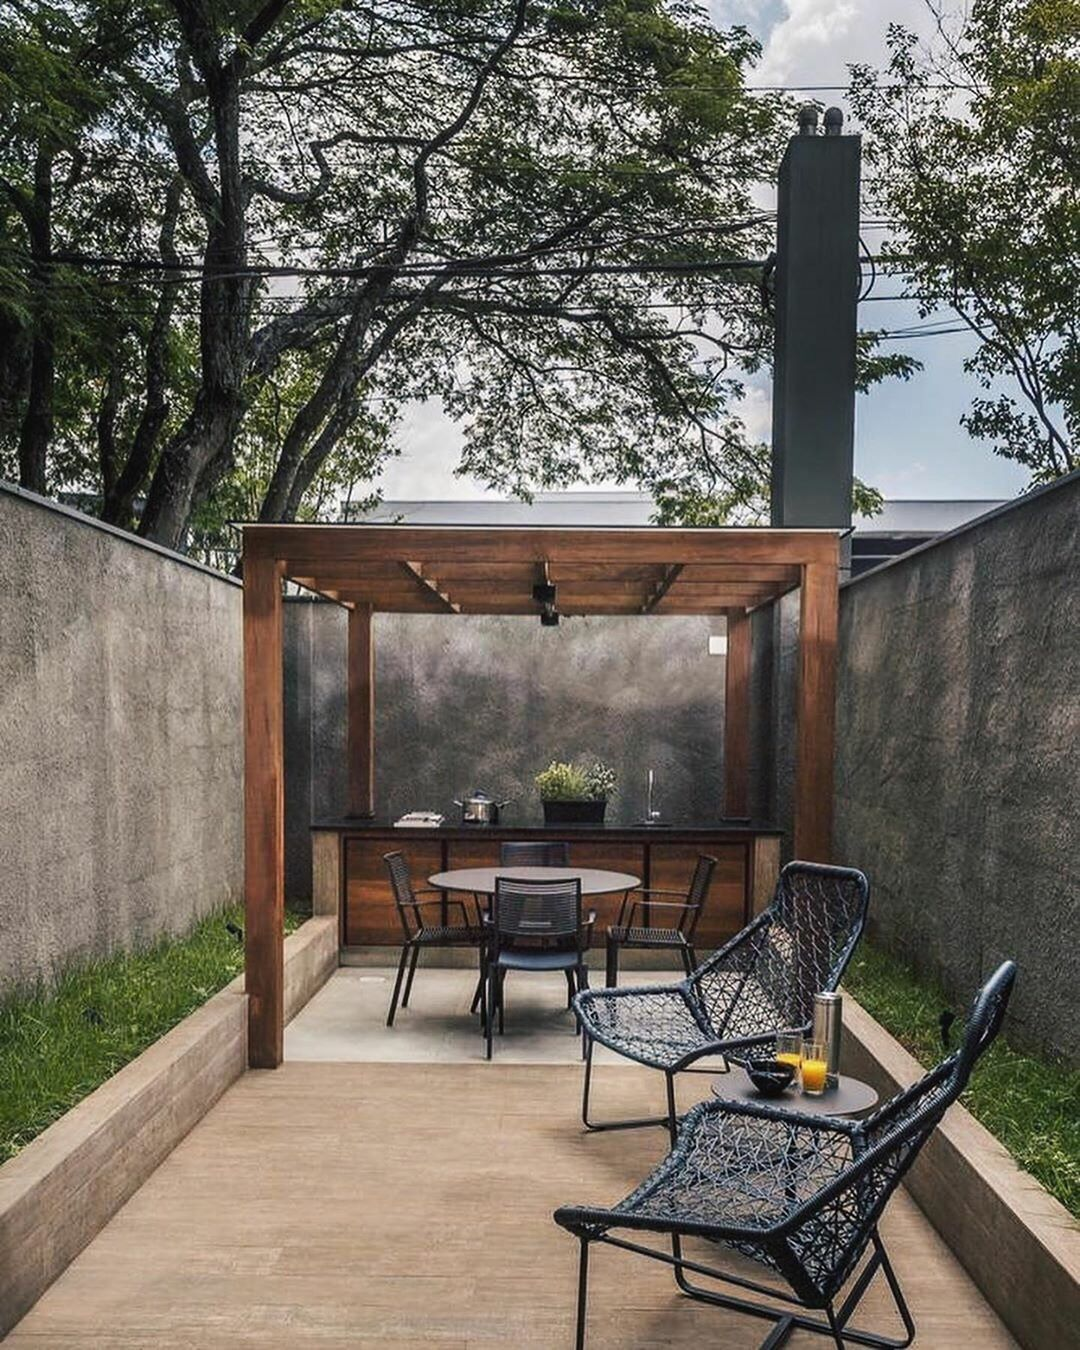 Modern patio | Terrace design, Modern outdoor living space ... on Myliving Outdoors  id=46249